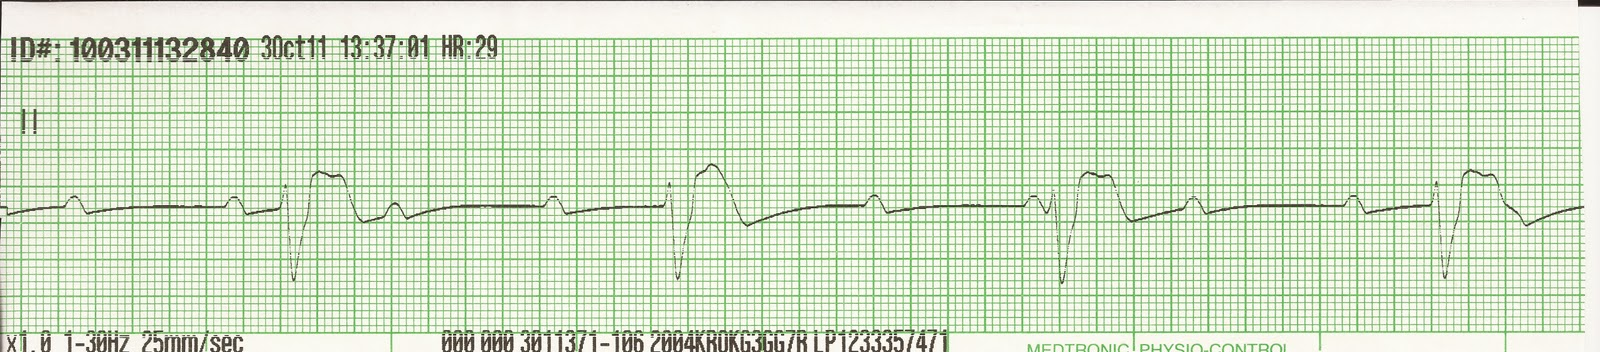 ekg rhythm strips of heart block into